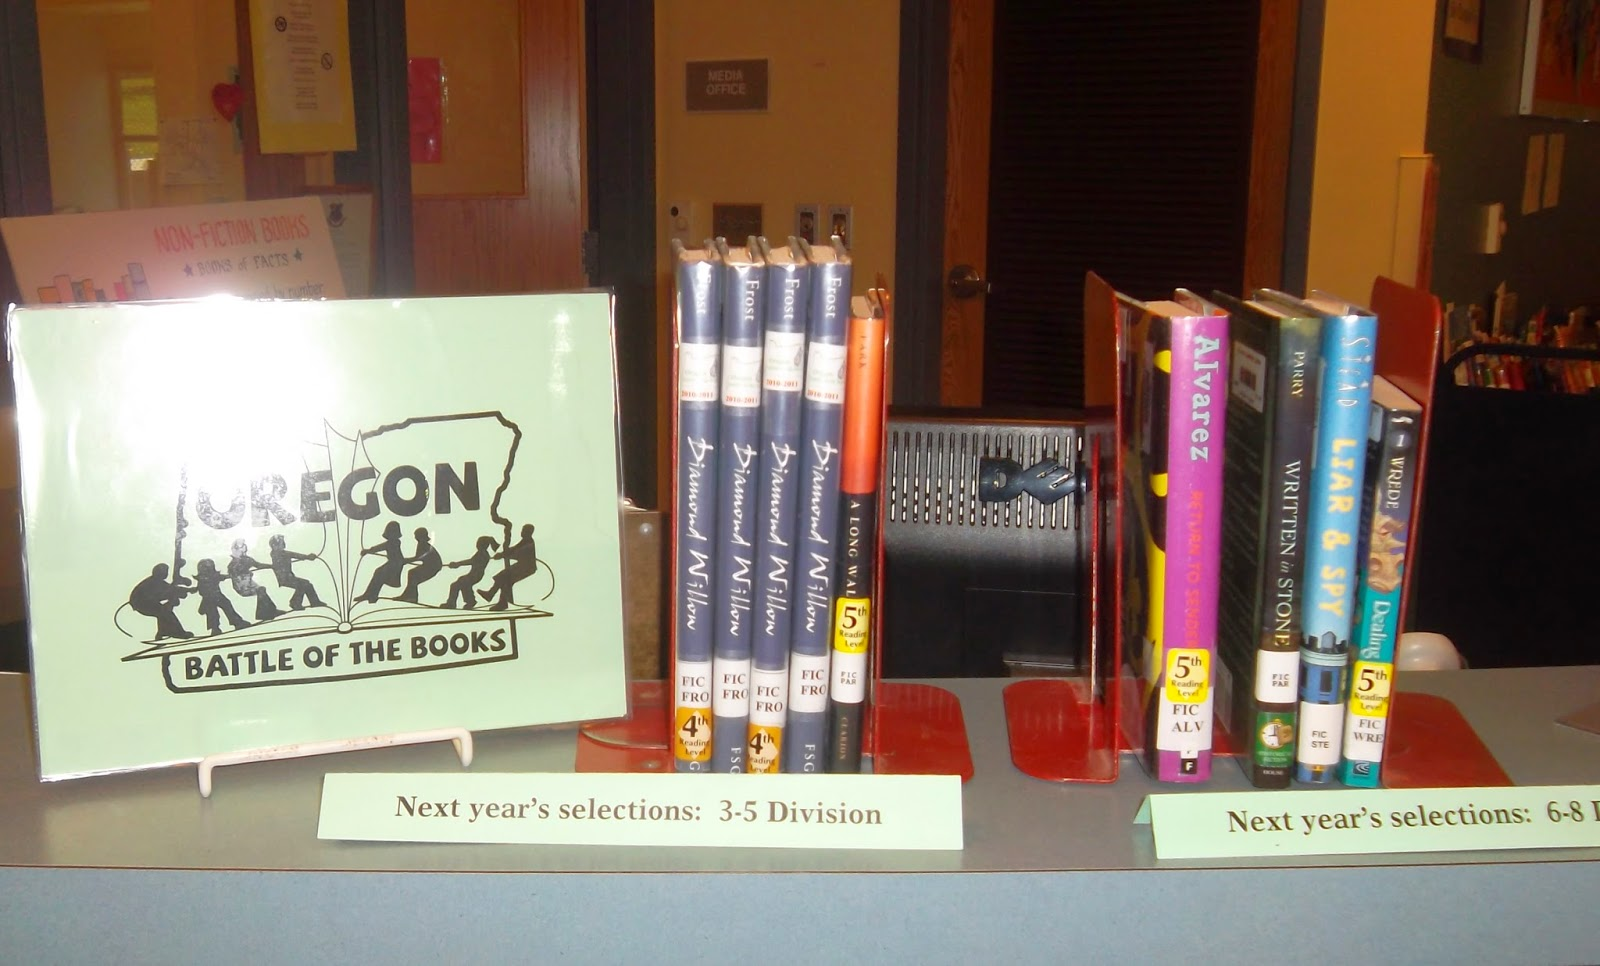 Two sets of books shelved between bookends, their spines facing outward. Tented signs in front of them designate the third-to-fifth grade divisions and sixth-to-eighth grade divisions, Oregon Battle of the Books. To the left, a green sign with the logo for Oregon Battle of the Books logo is propped in a wire stand.